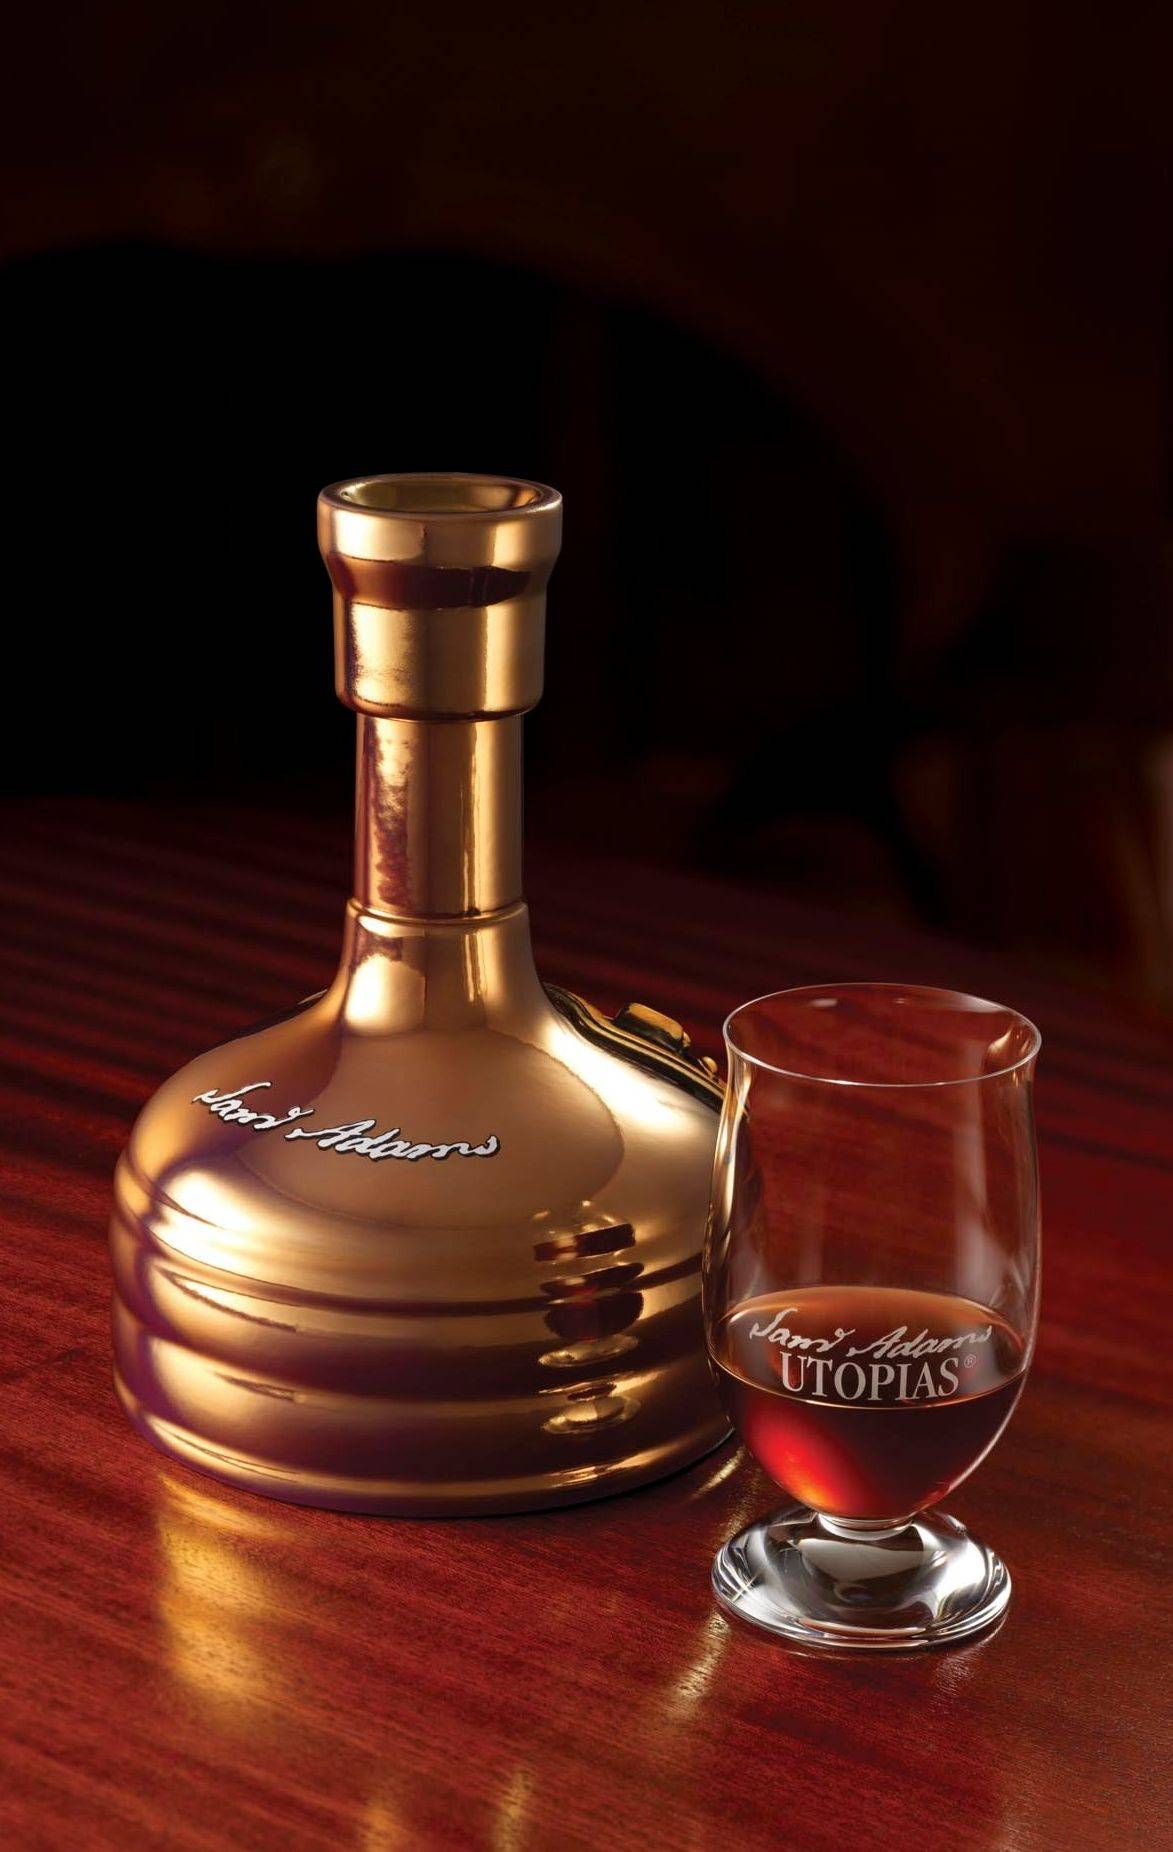 Fewer than 15,000 bottles of Sam Adams Utopias were brewed this year.